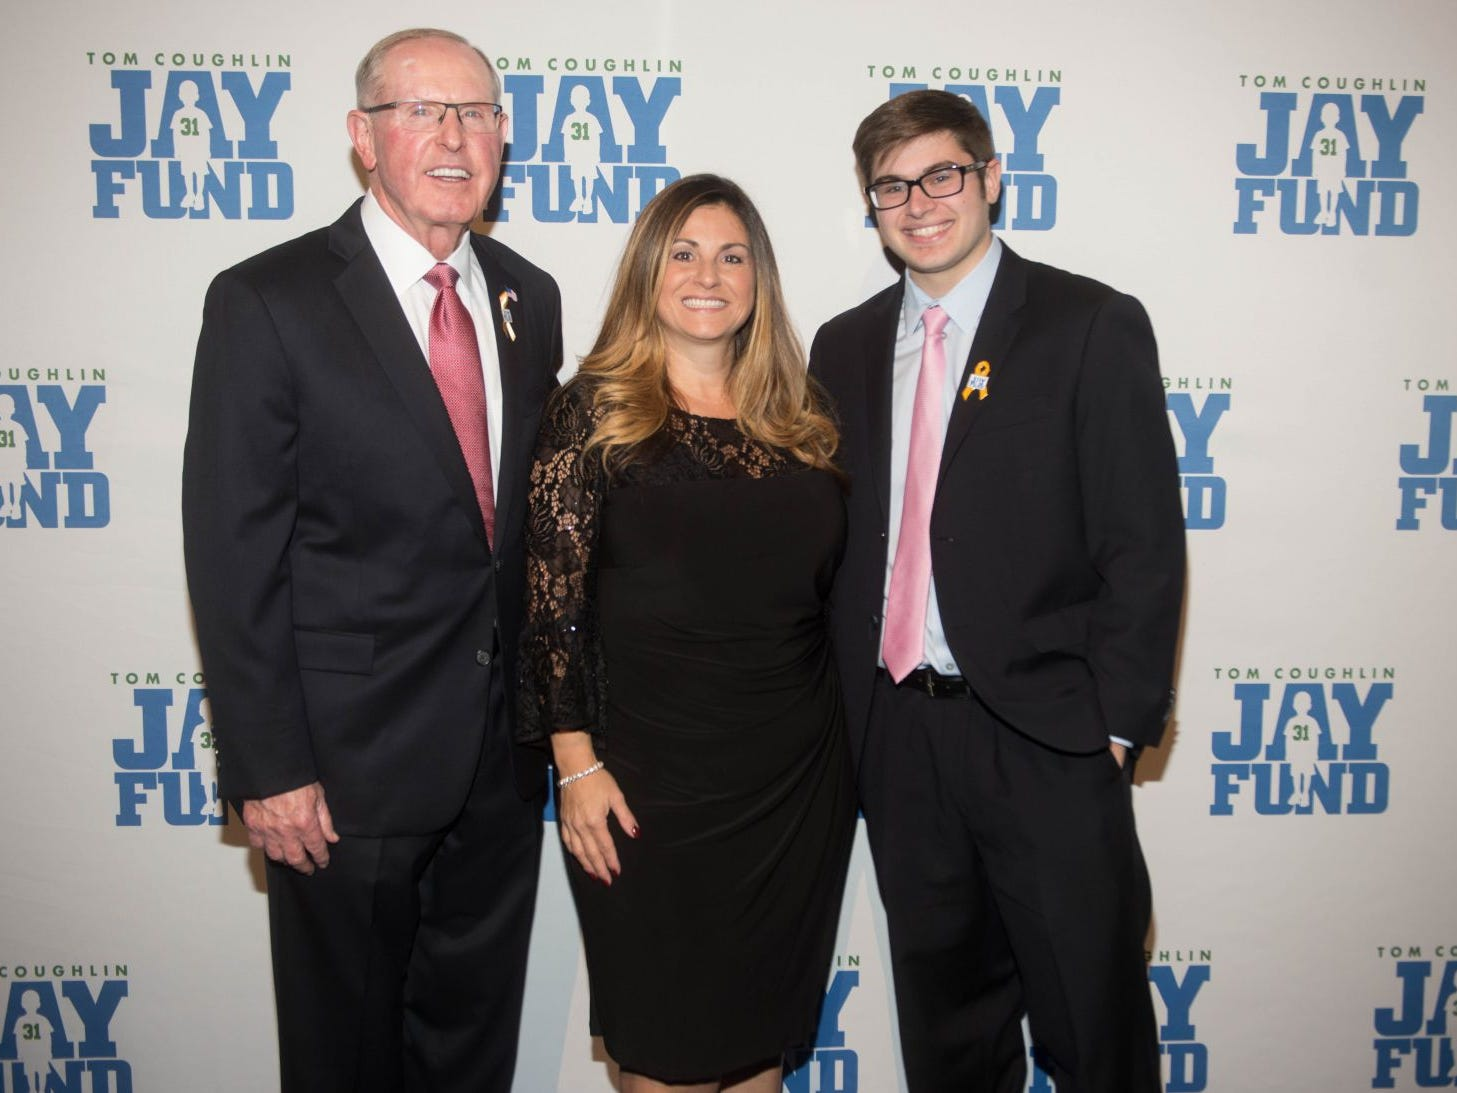 Tom Coughlin, Dawn and Daniel. The 14th annual Jay Fund Champions for Children Gala was held at Cipriani 42nd Street. 09/21/2018